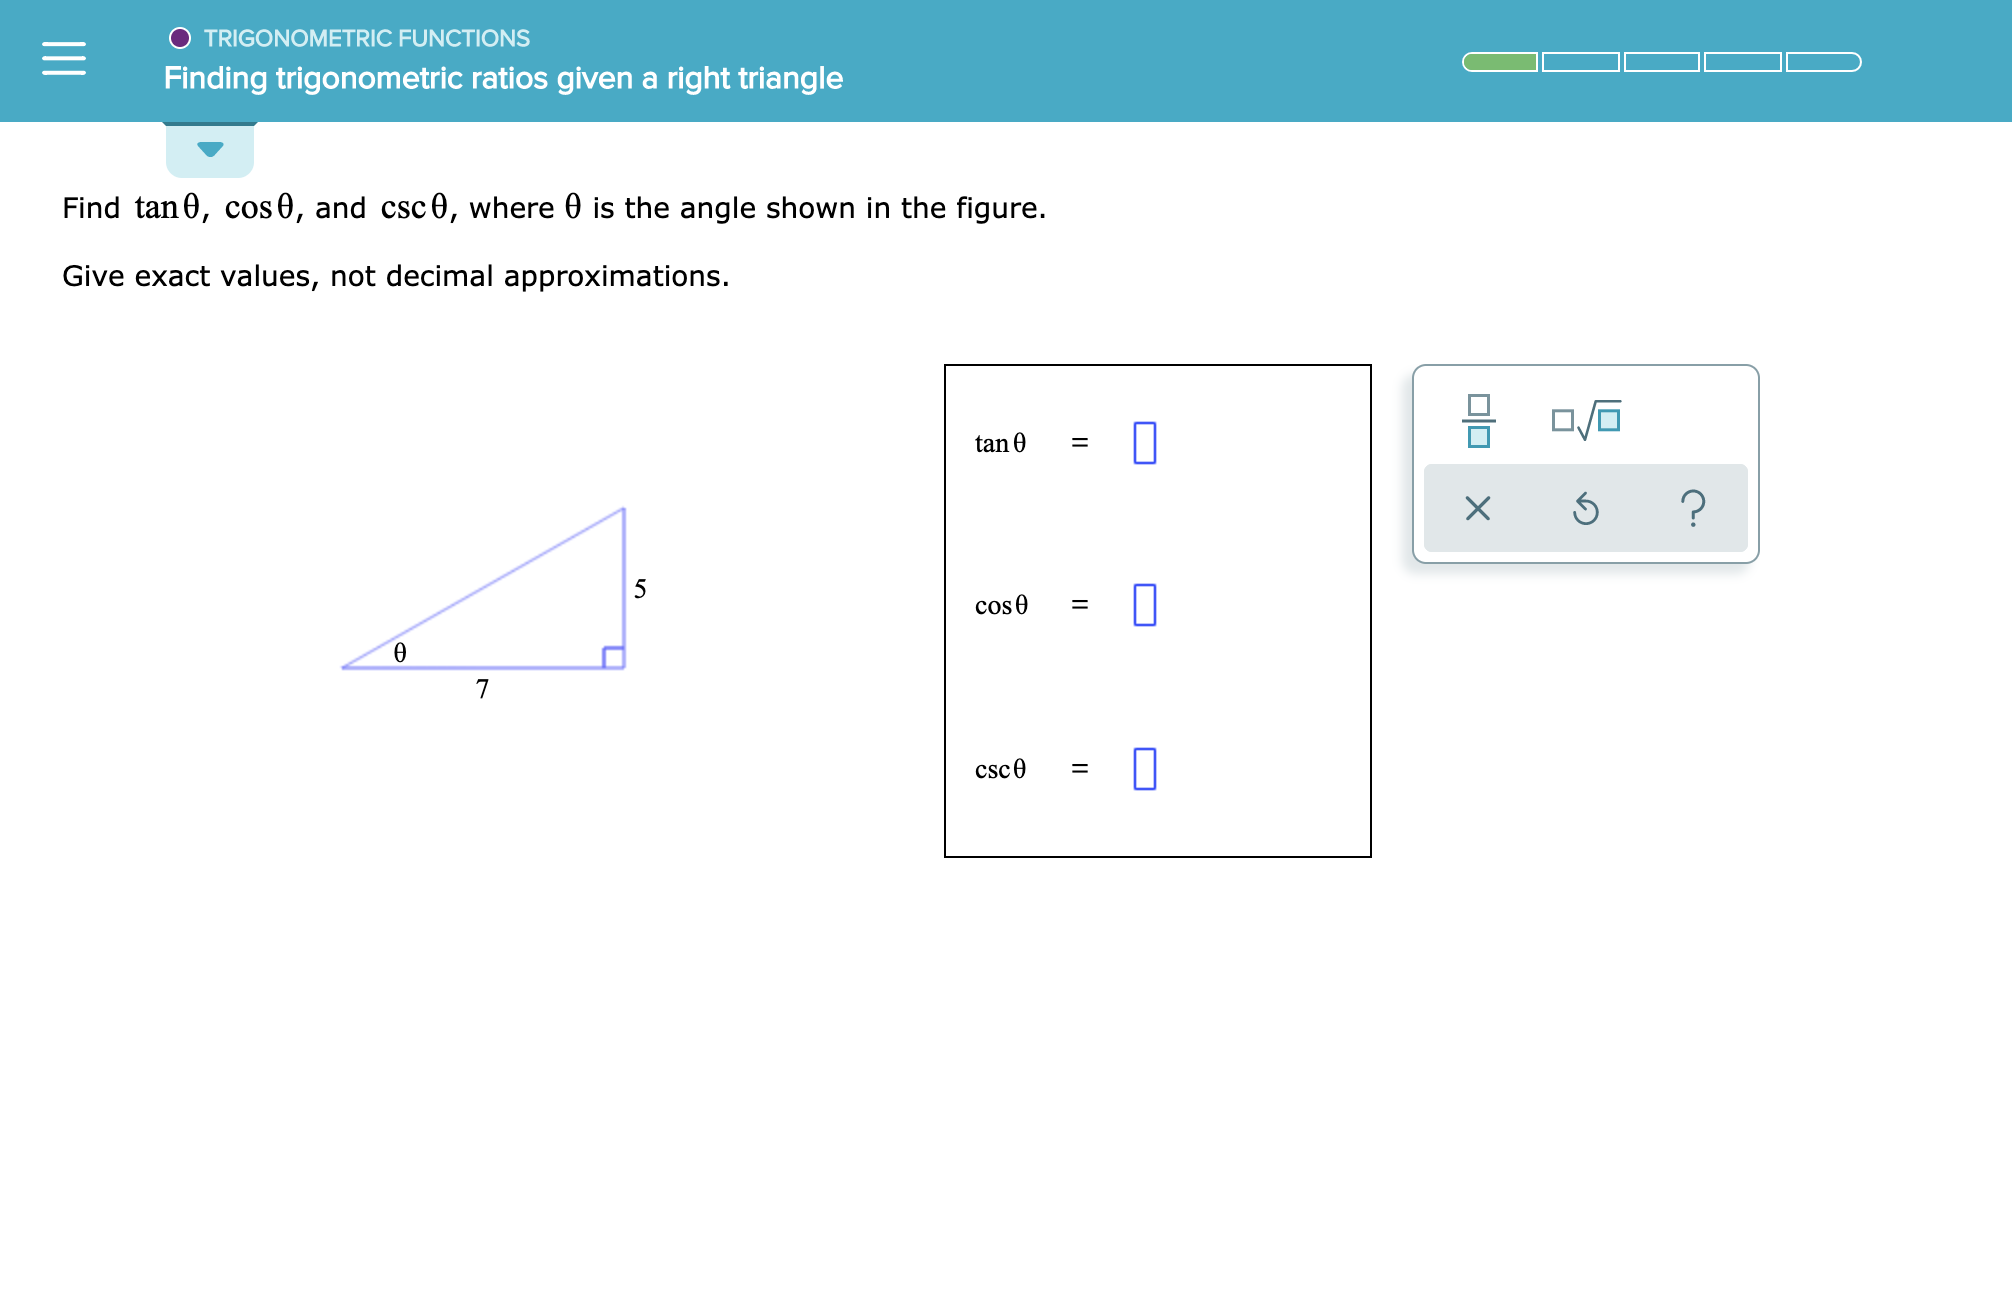 TRIGONOMETRIC FUNCTIONS Finding trigonometric ratios given a right triangle Find tan0, cos0, and csc0, where 0 is the angle shown in the figure. Give exact values, not decimal approximations. tan 0 = ? X 5 cose 7 csc0